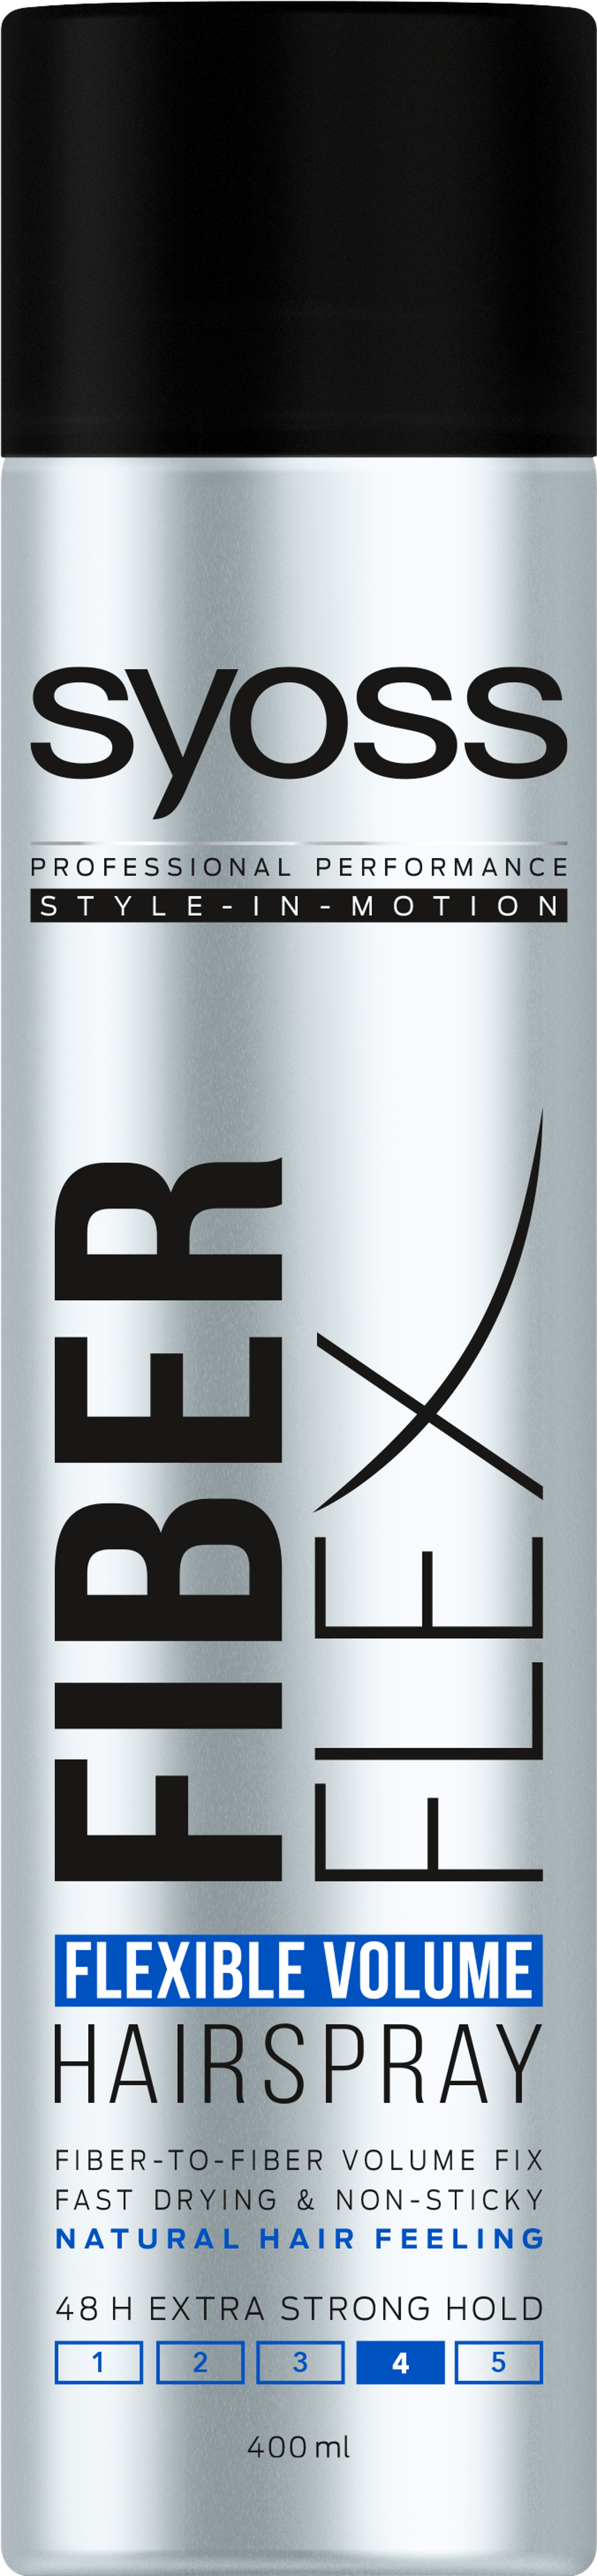 Syoss Fiber Flex Flexible Volume Hairspray